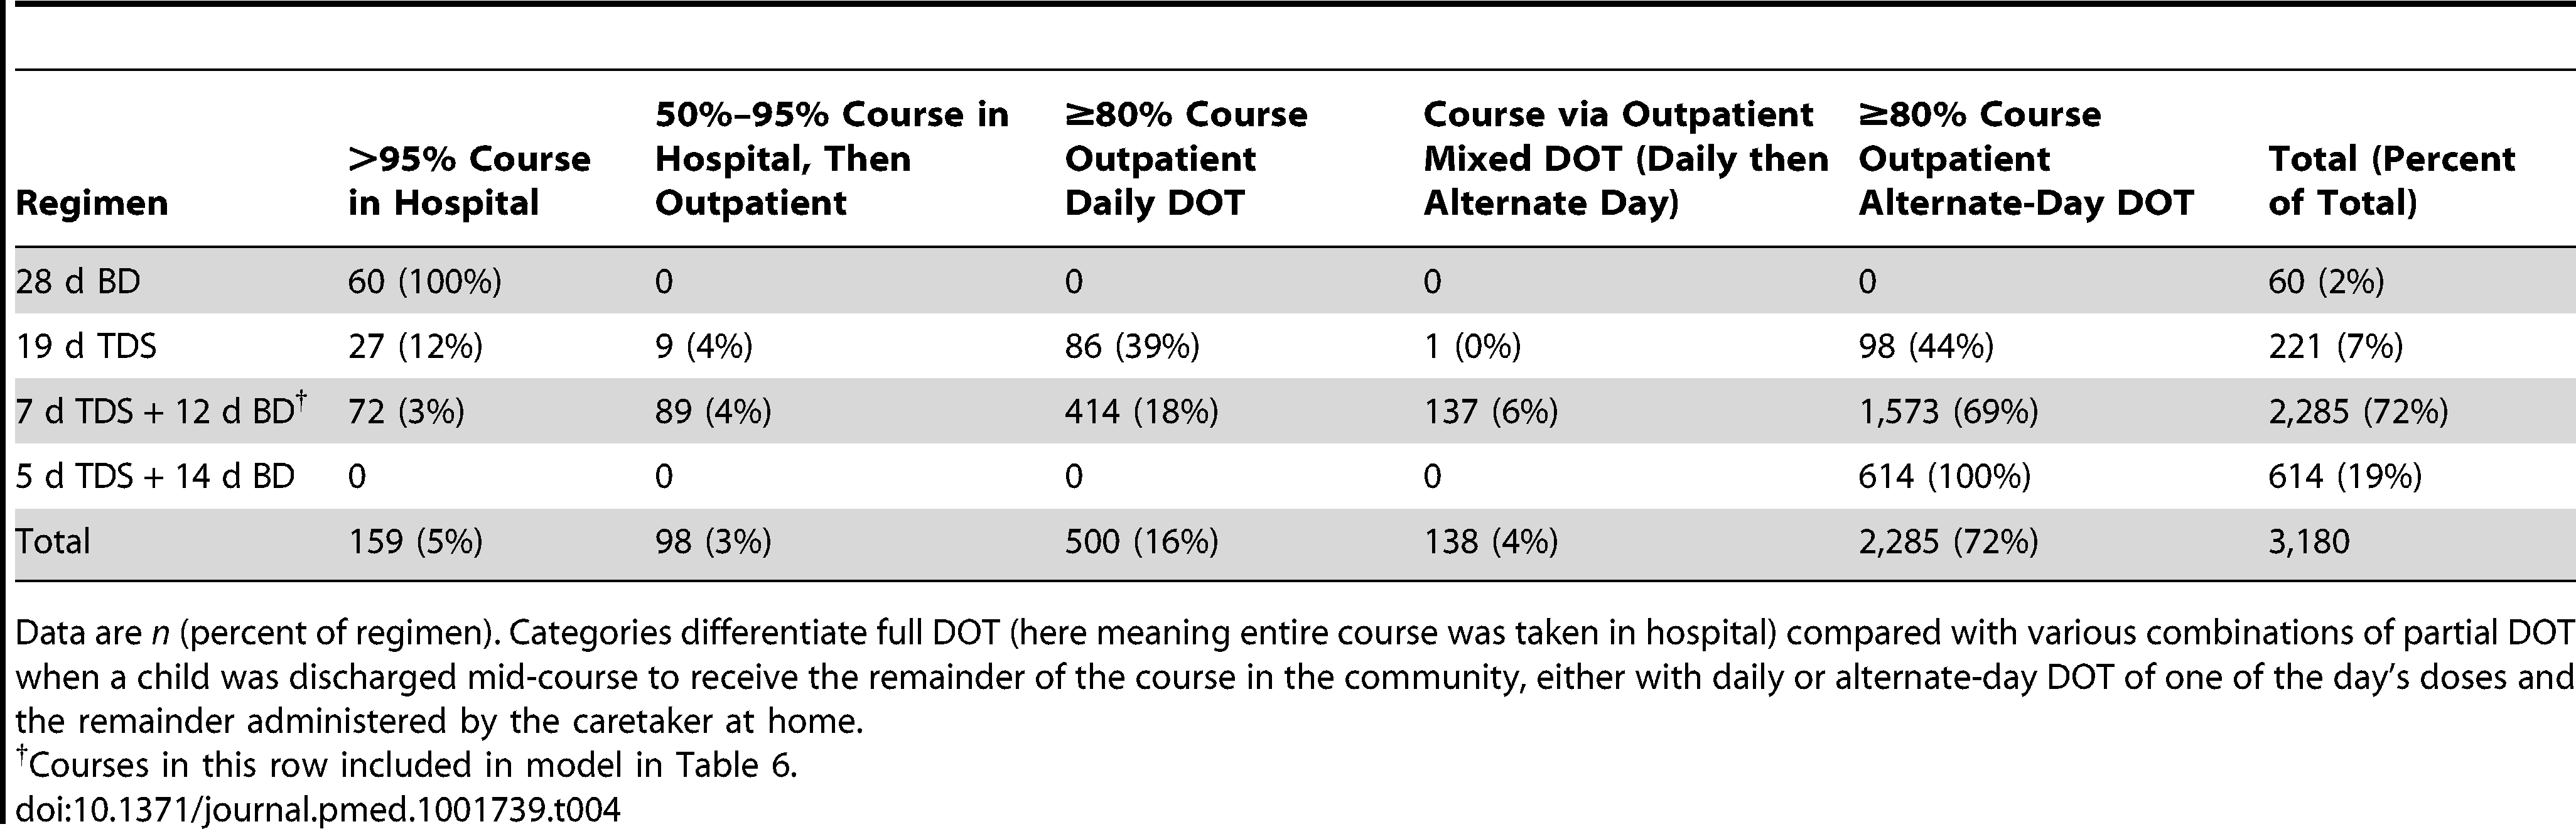 Number of courses by dose regimen and administration regimen.